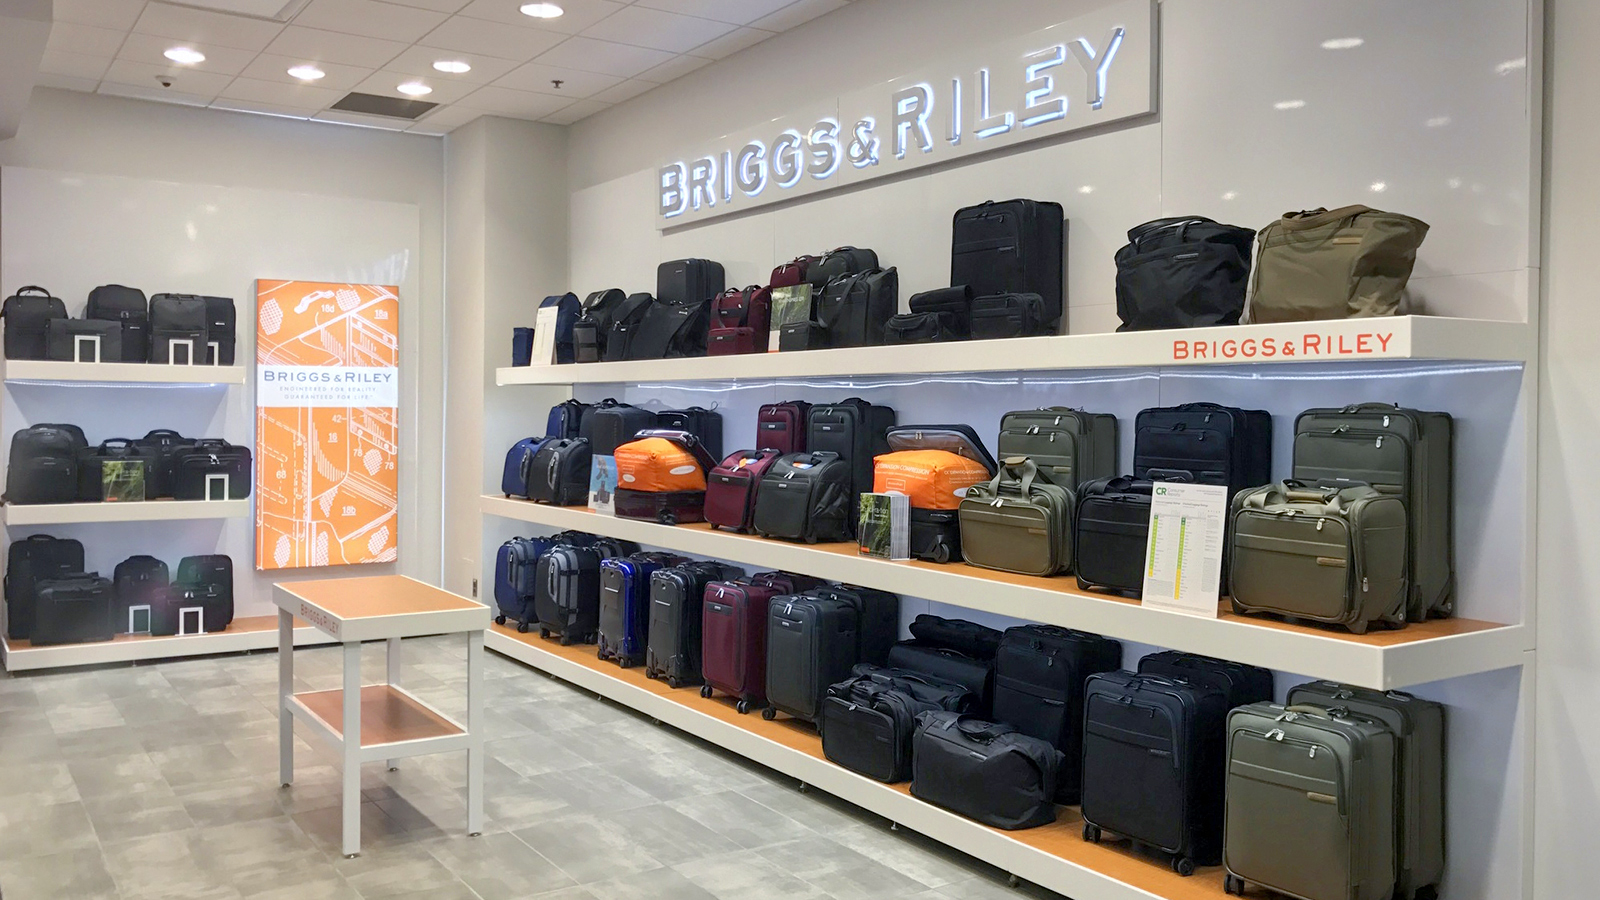 Hauppauge luggage brand makes a case for giving